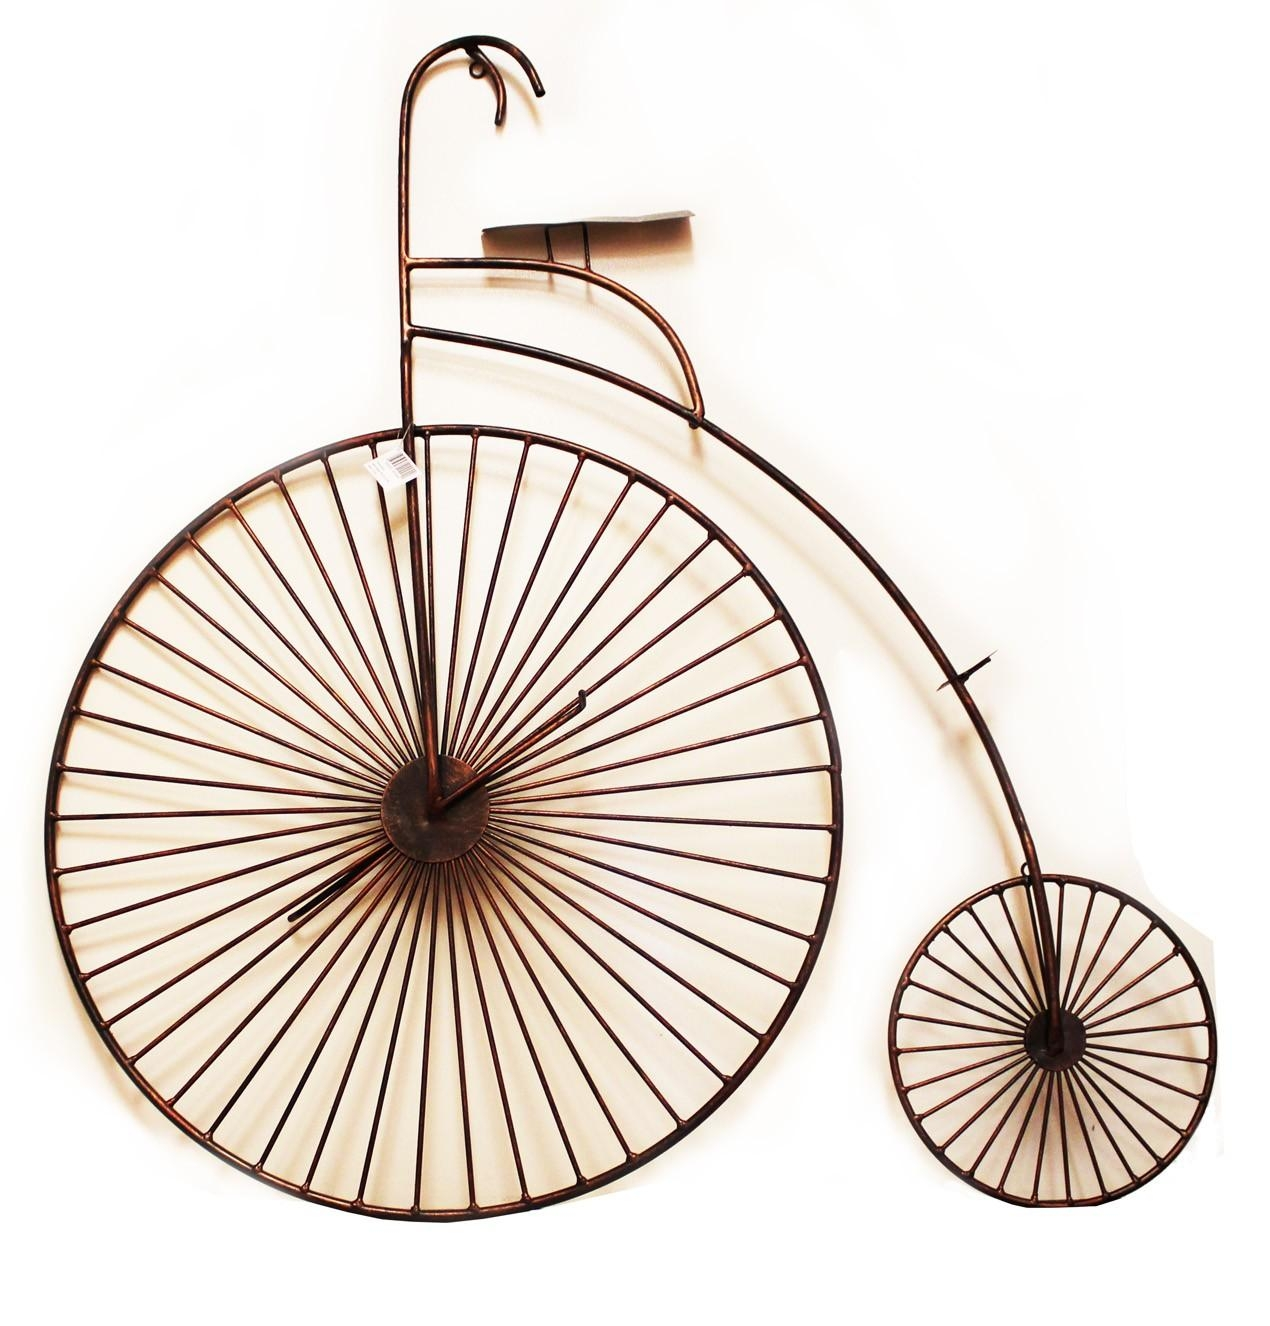 3D Copper Tone Bicycle Wall Art | Unique Metal Wall Art | Wall Decor With Bicycle Metal Wall Art (Image 2 of 20)